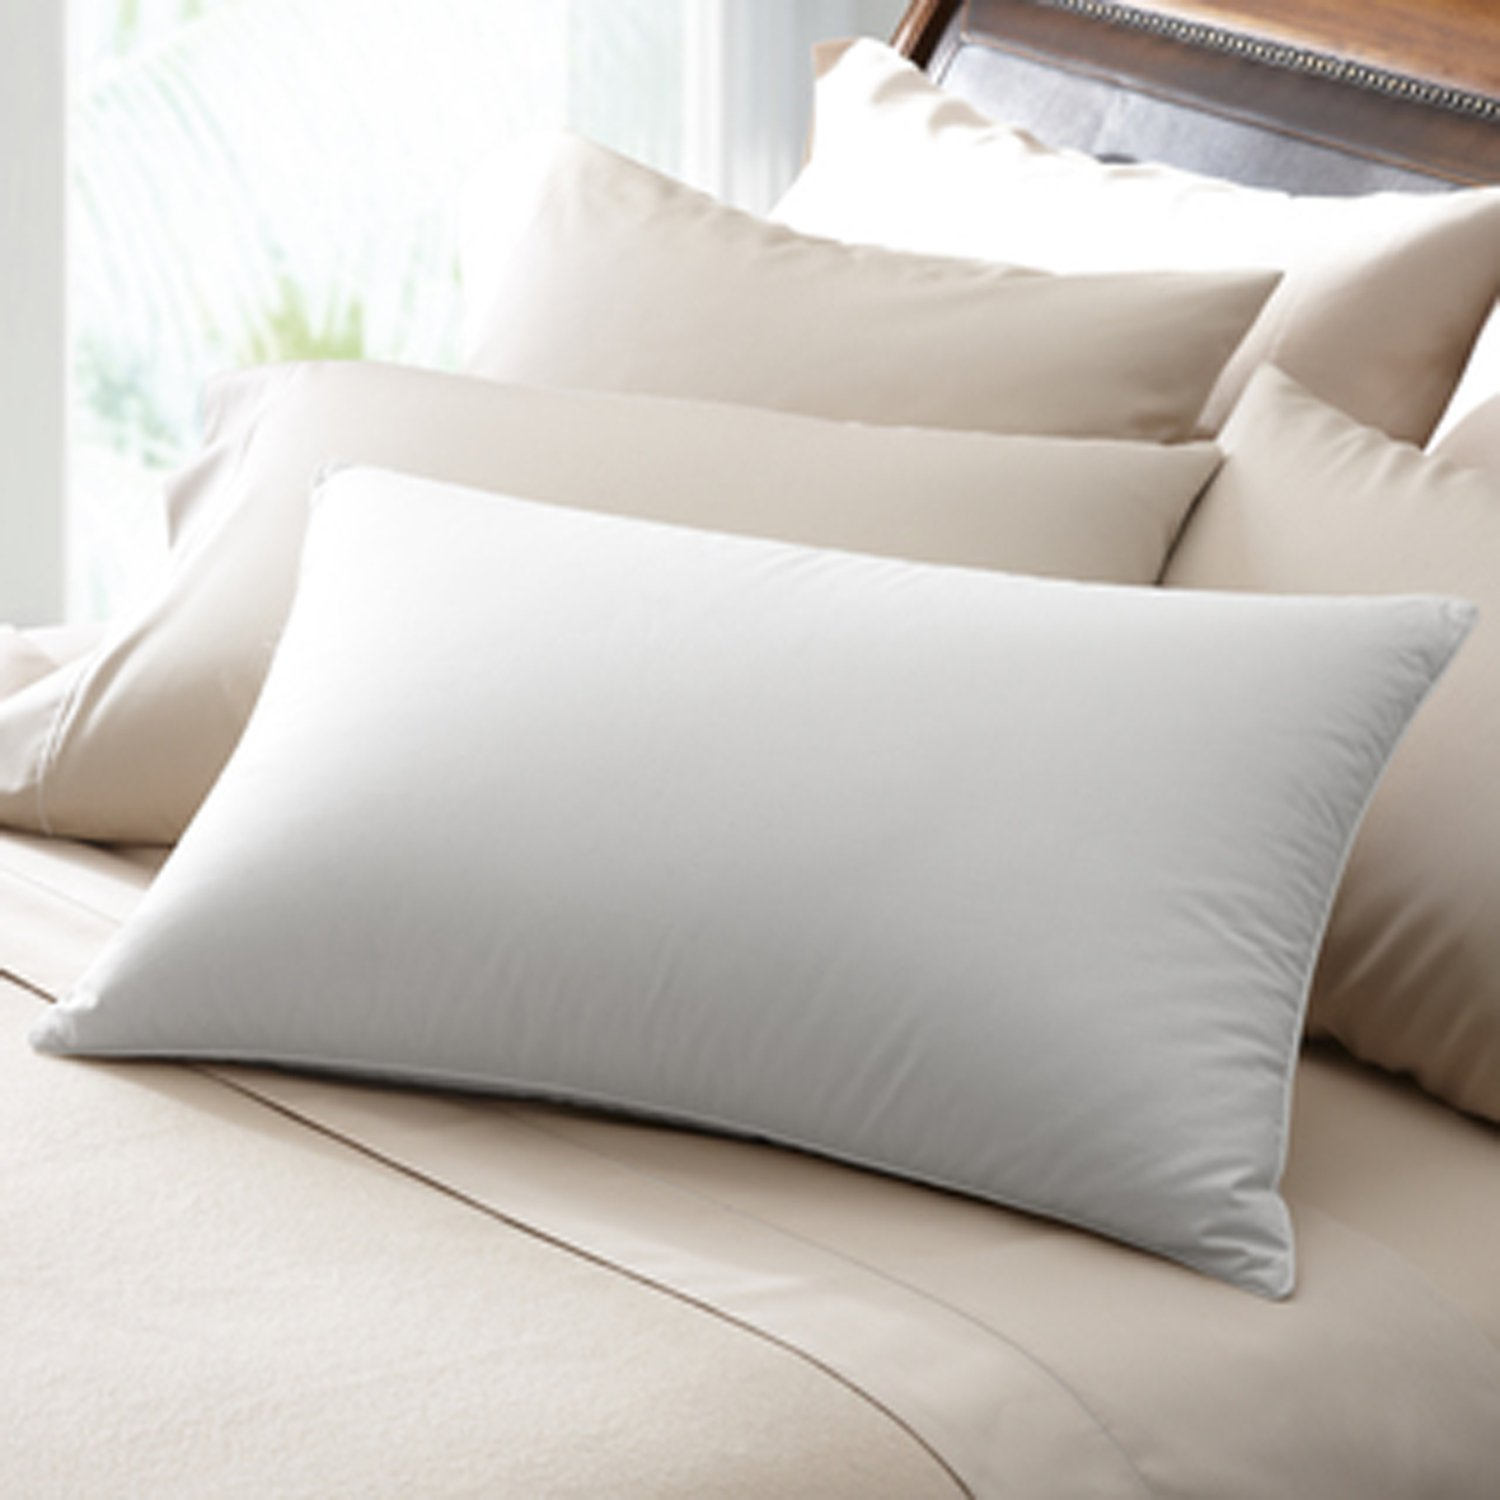 euro pillow polyester piped itm down double stitched alternative pillows white overfilled comfy square